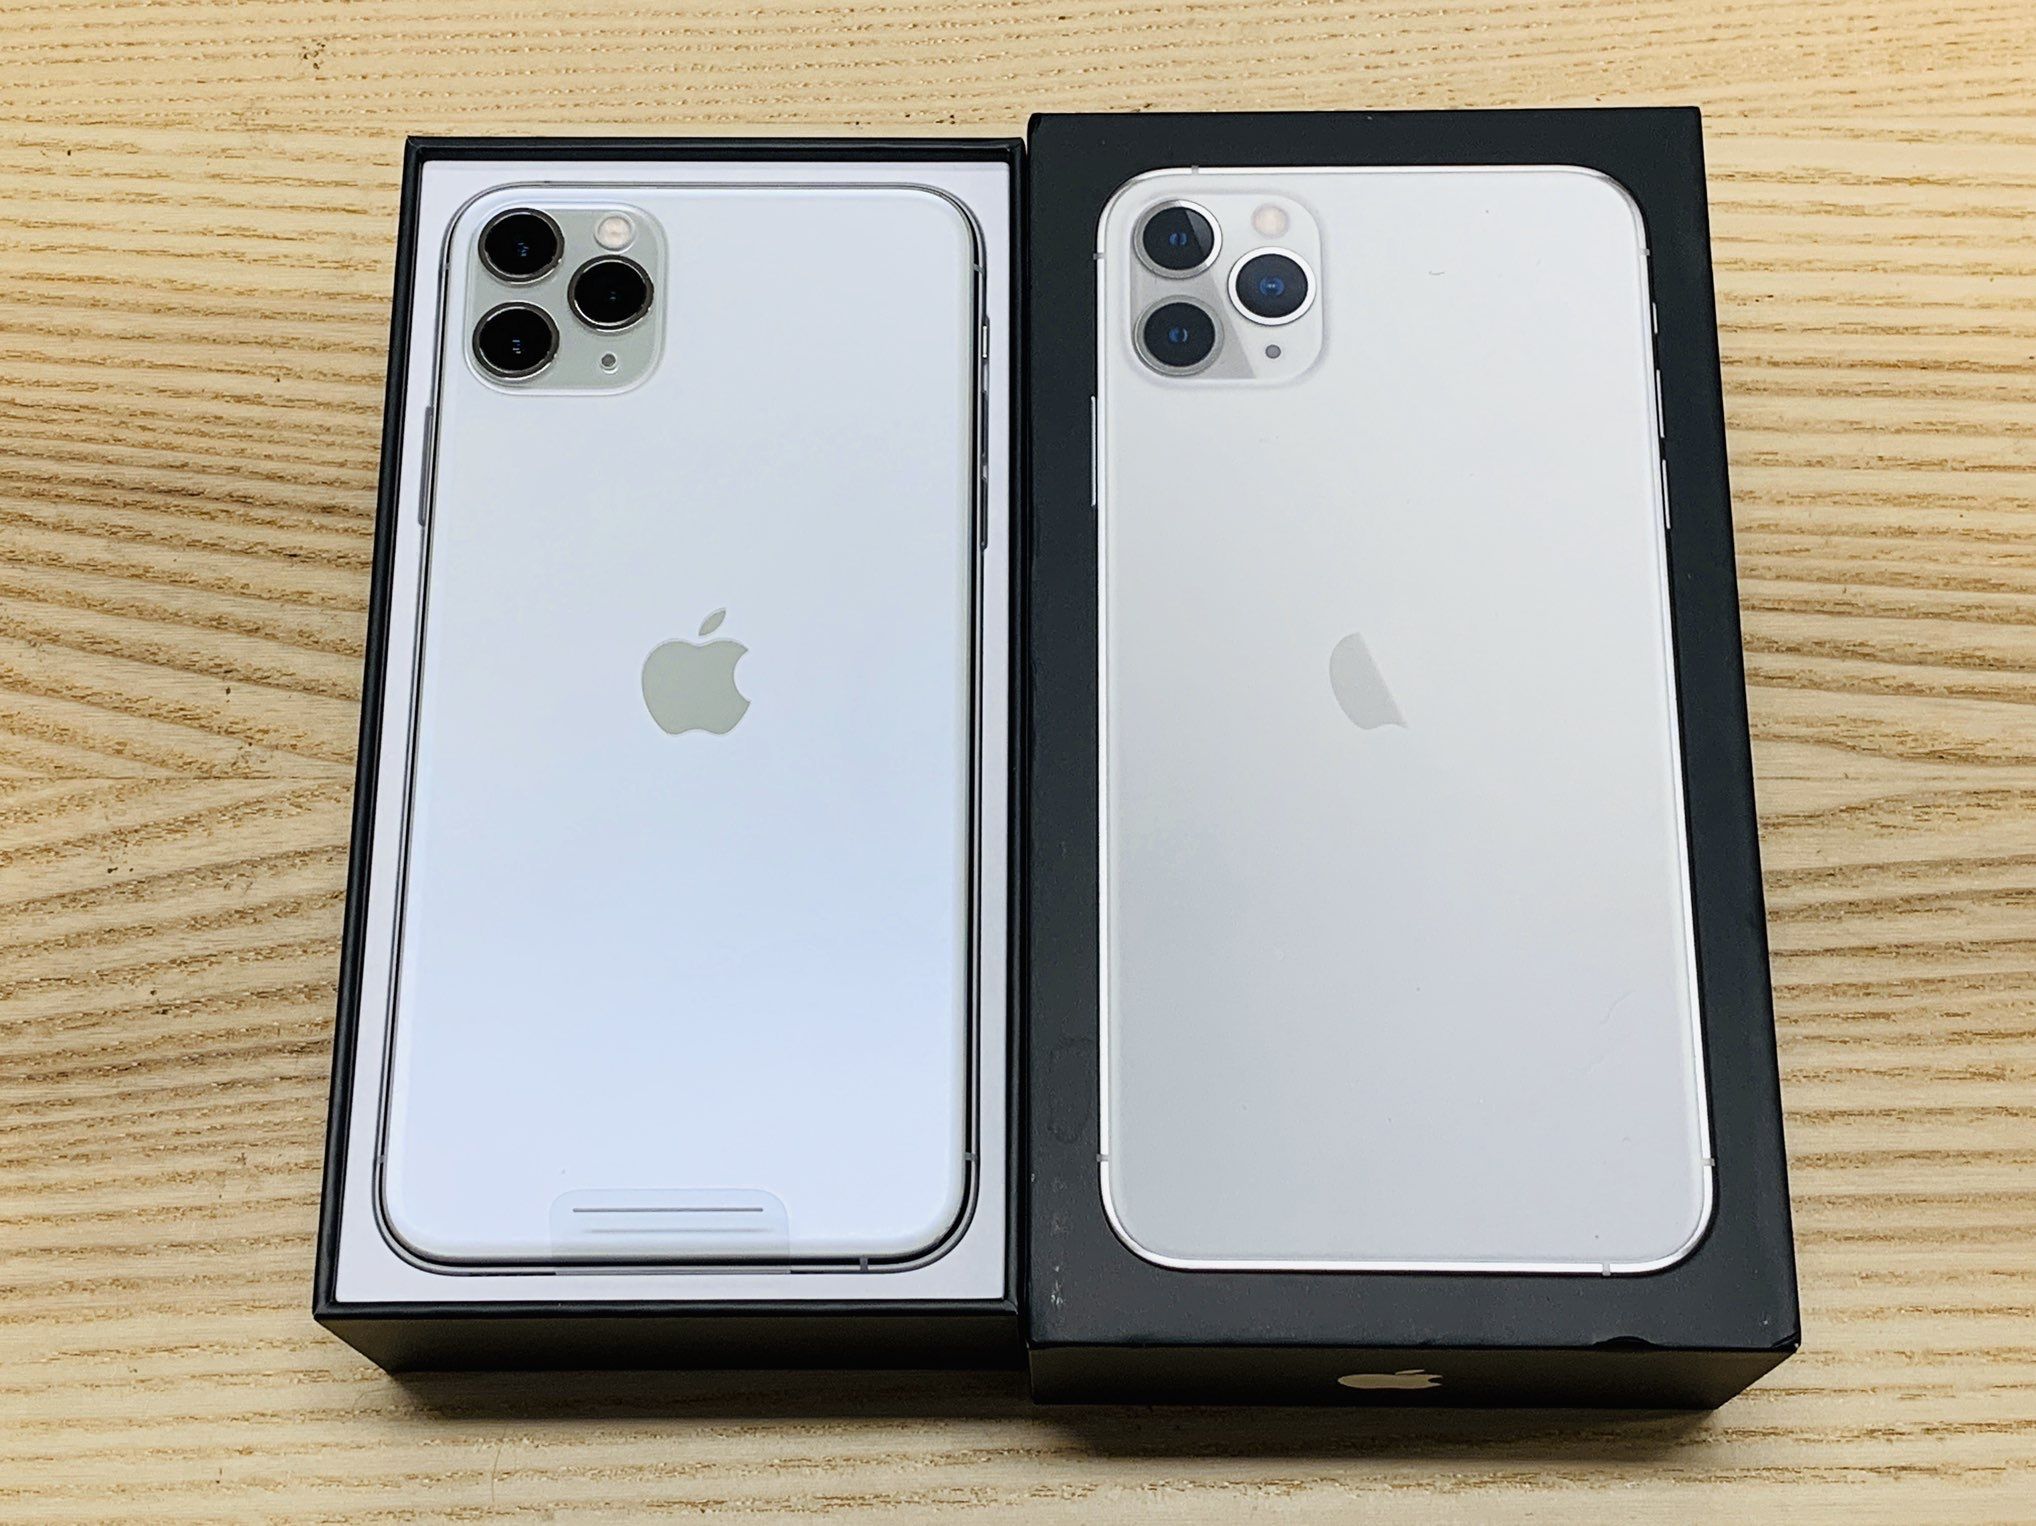 APPLE IPHONE 11 PRO 64GB ΓΙΑ €500 ΚΑΙ IPHONE 11 PRO MAX 64GB ΓΙΑ €530 ΚΑΙ IPHONE 11 64 GB €400 ΚΑΙ IPHONE XS 64 GB ΓΙΑ €350 ,  IPHONE XS Max 64 GB ΓΙΑ €370 , WHATSAPP CHAT : +27642105648